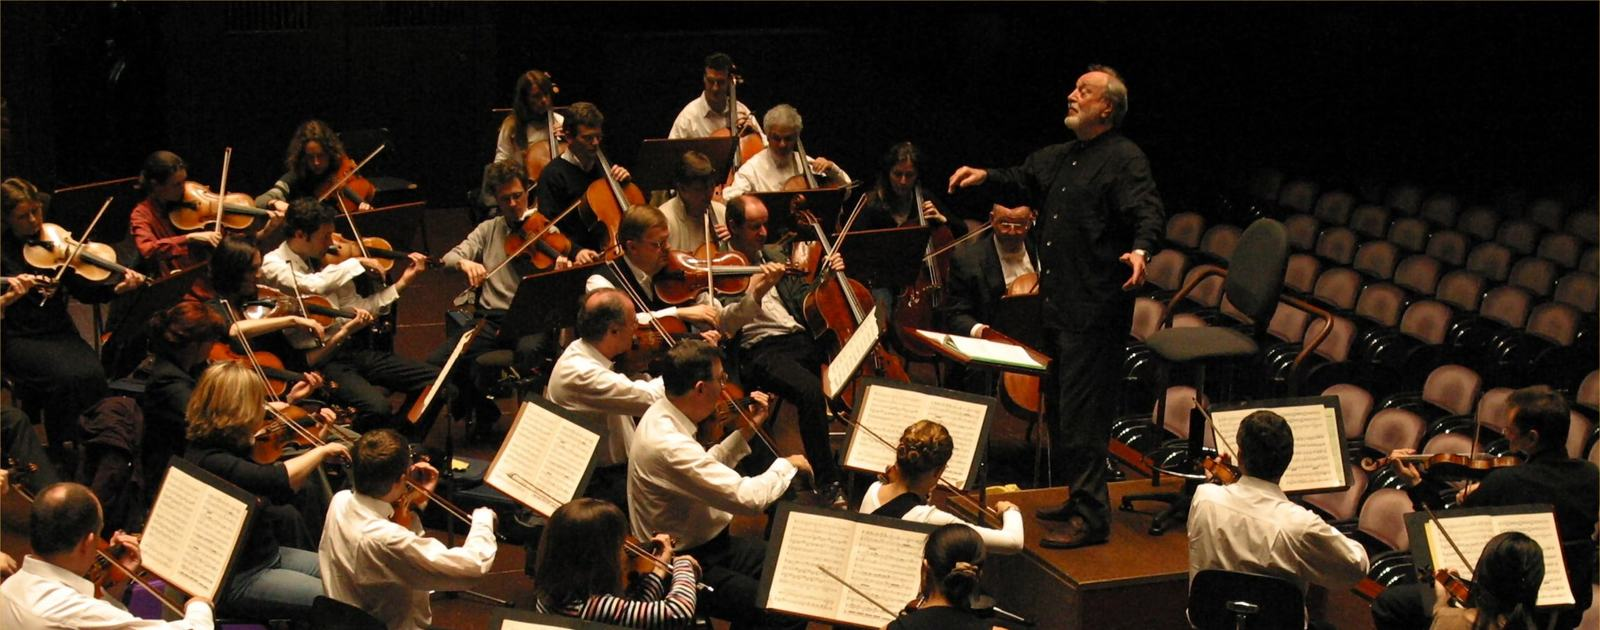 Kurt Masur conducts the London Philharmonic Orchestra on tour in Germany